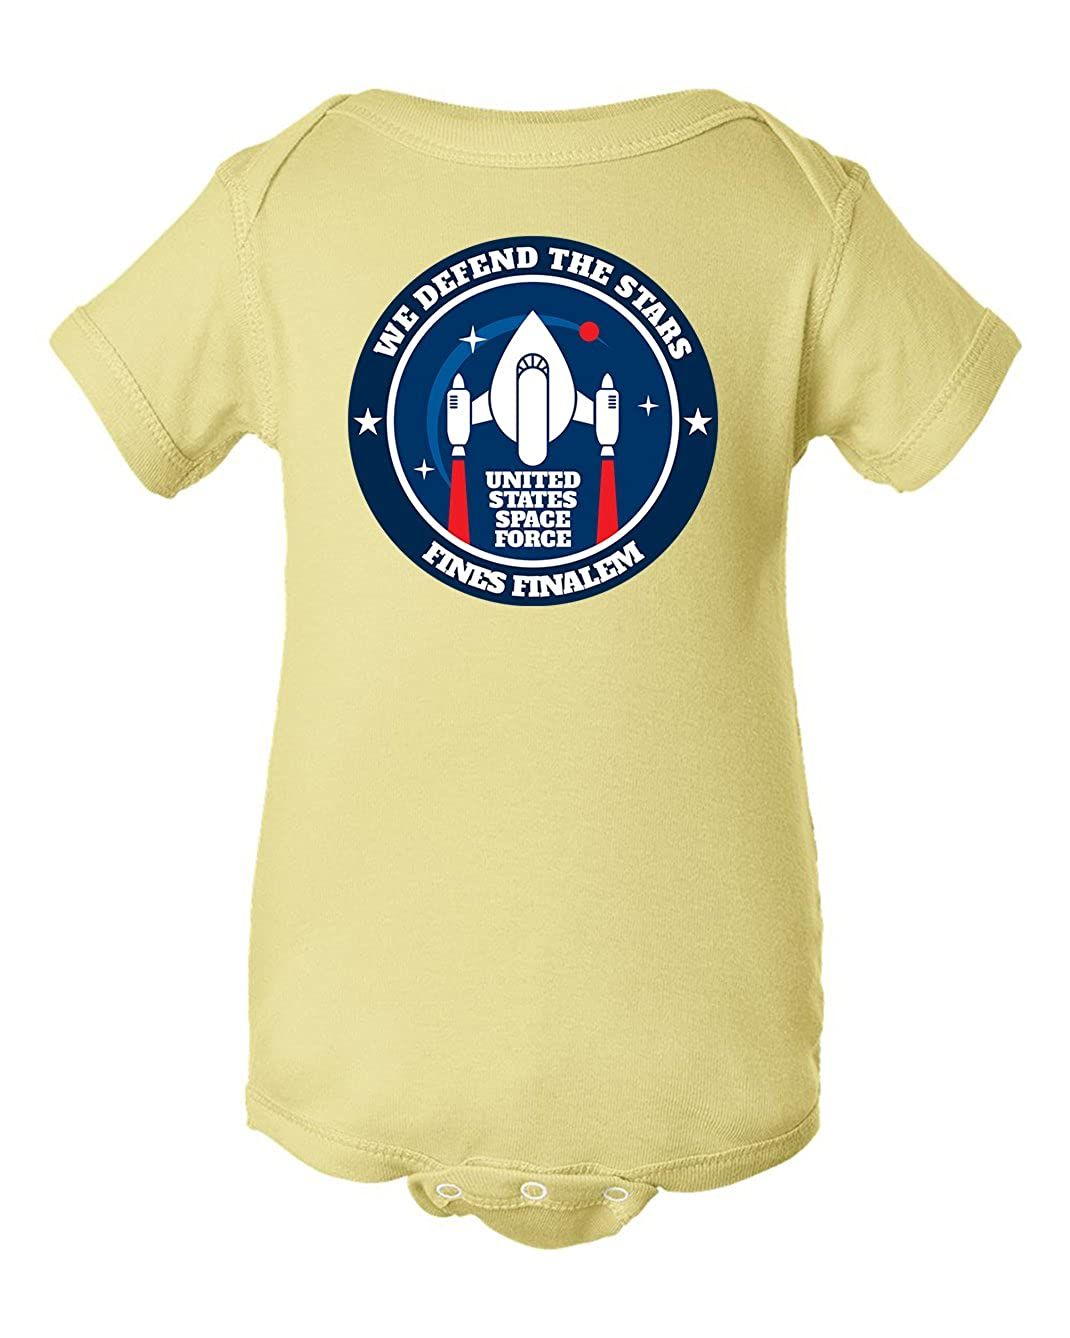 Tenacitee Baby's United States Space Force Shirt 12231a